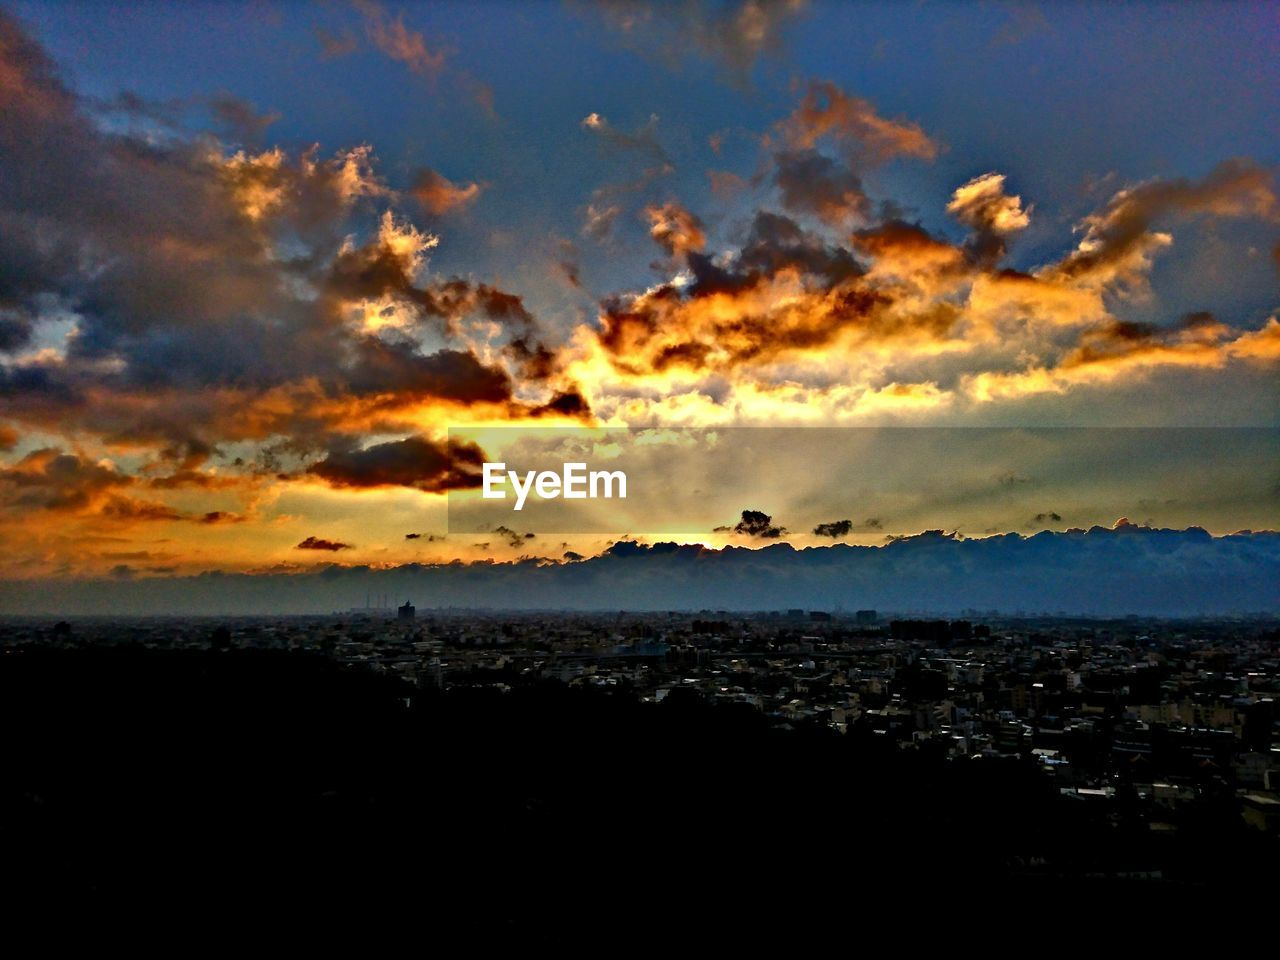 sky, sunset, nature, beauty in nature, sea, no people, tranquility, scenics, cloud - sky, silhouette, cityscape, landscape, outdoors, city